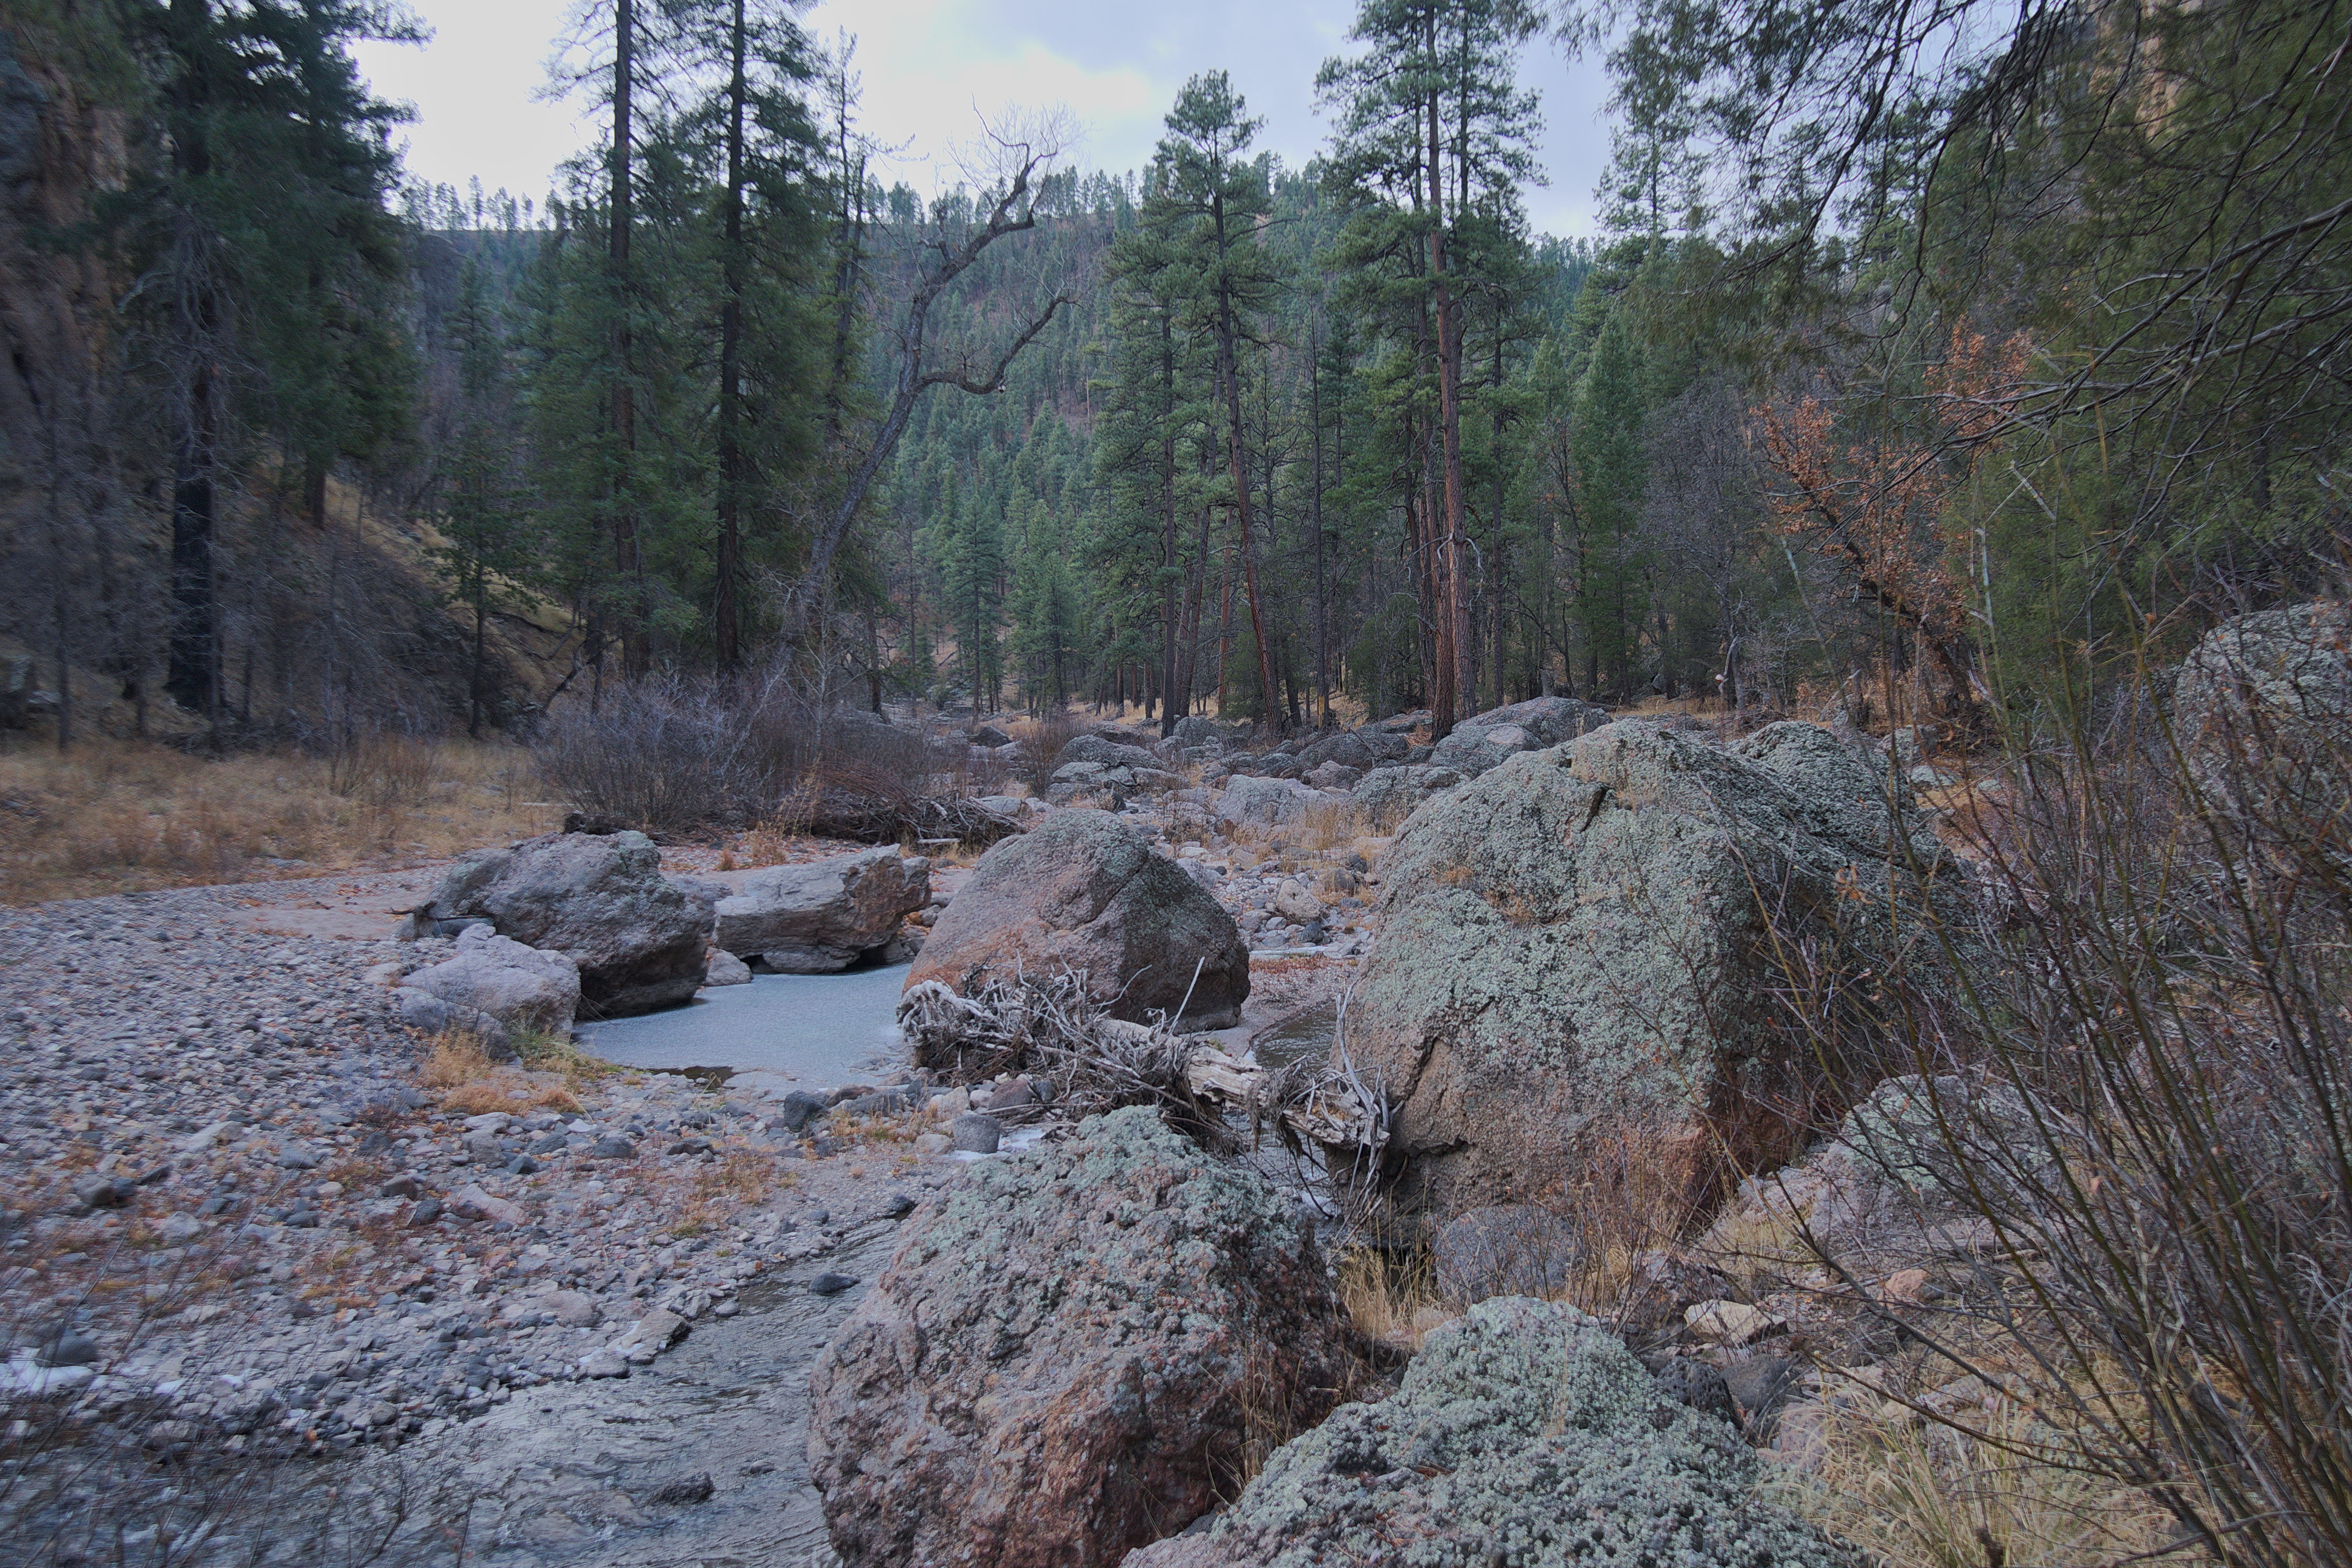 The West Fork of the Gila River in the winter